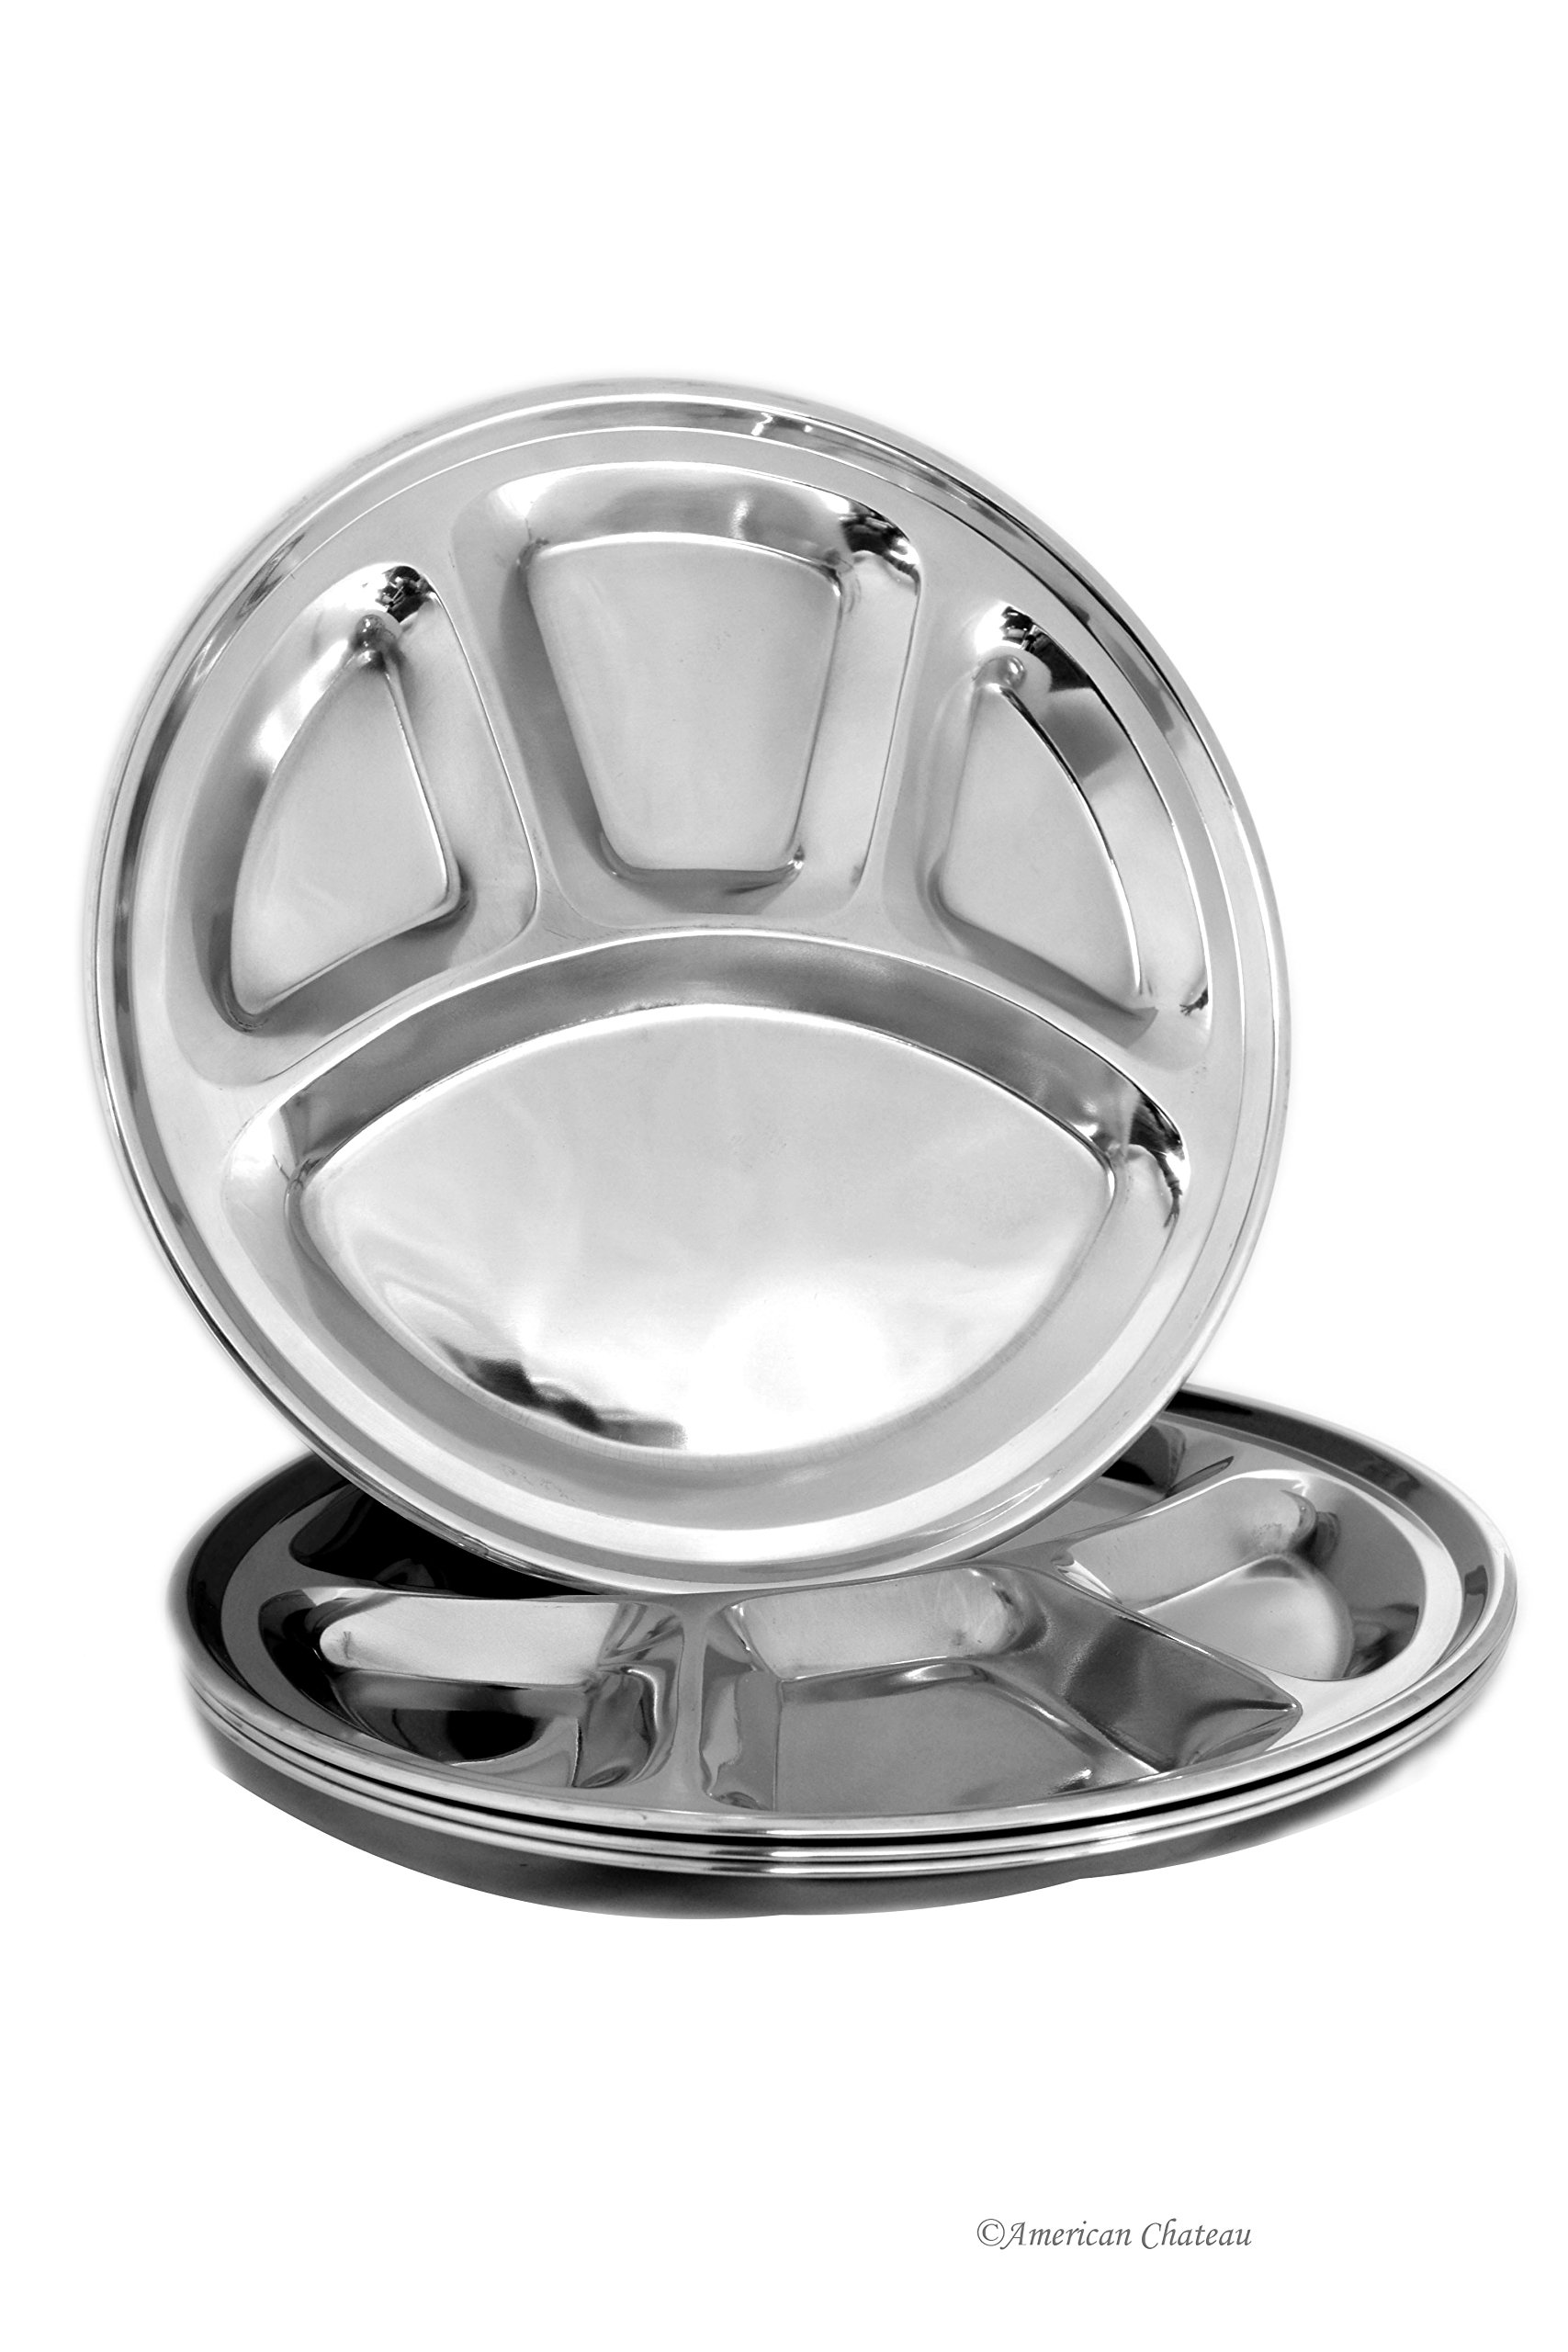 Set 4 Divided Stainless Steel 11.5'' Fondue/Indian Food Tray Platters Plates